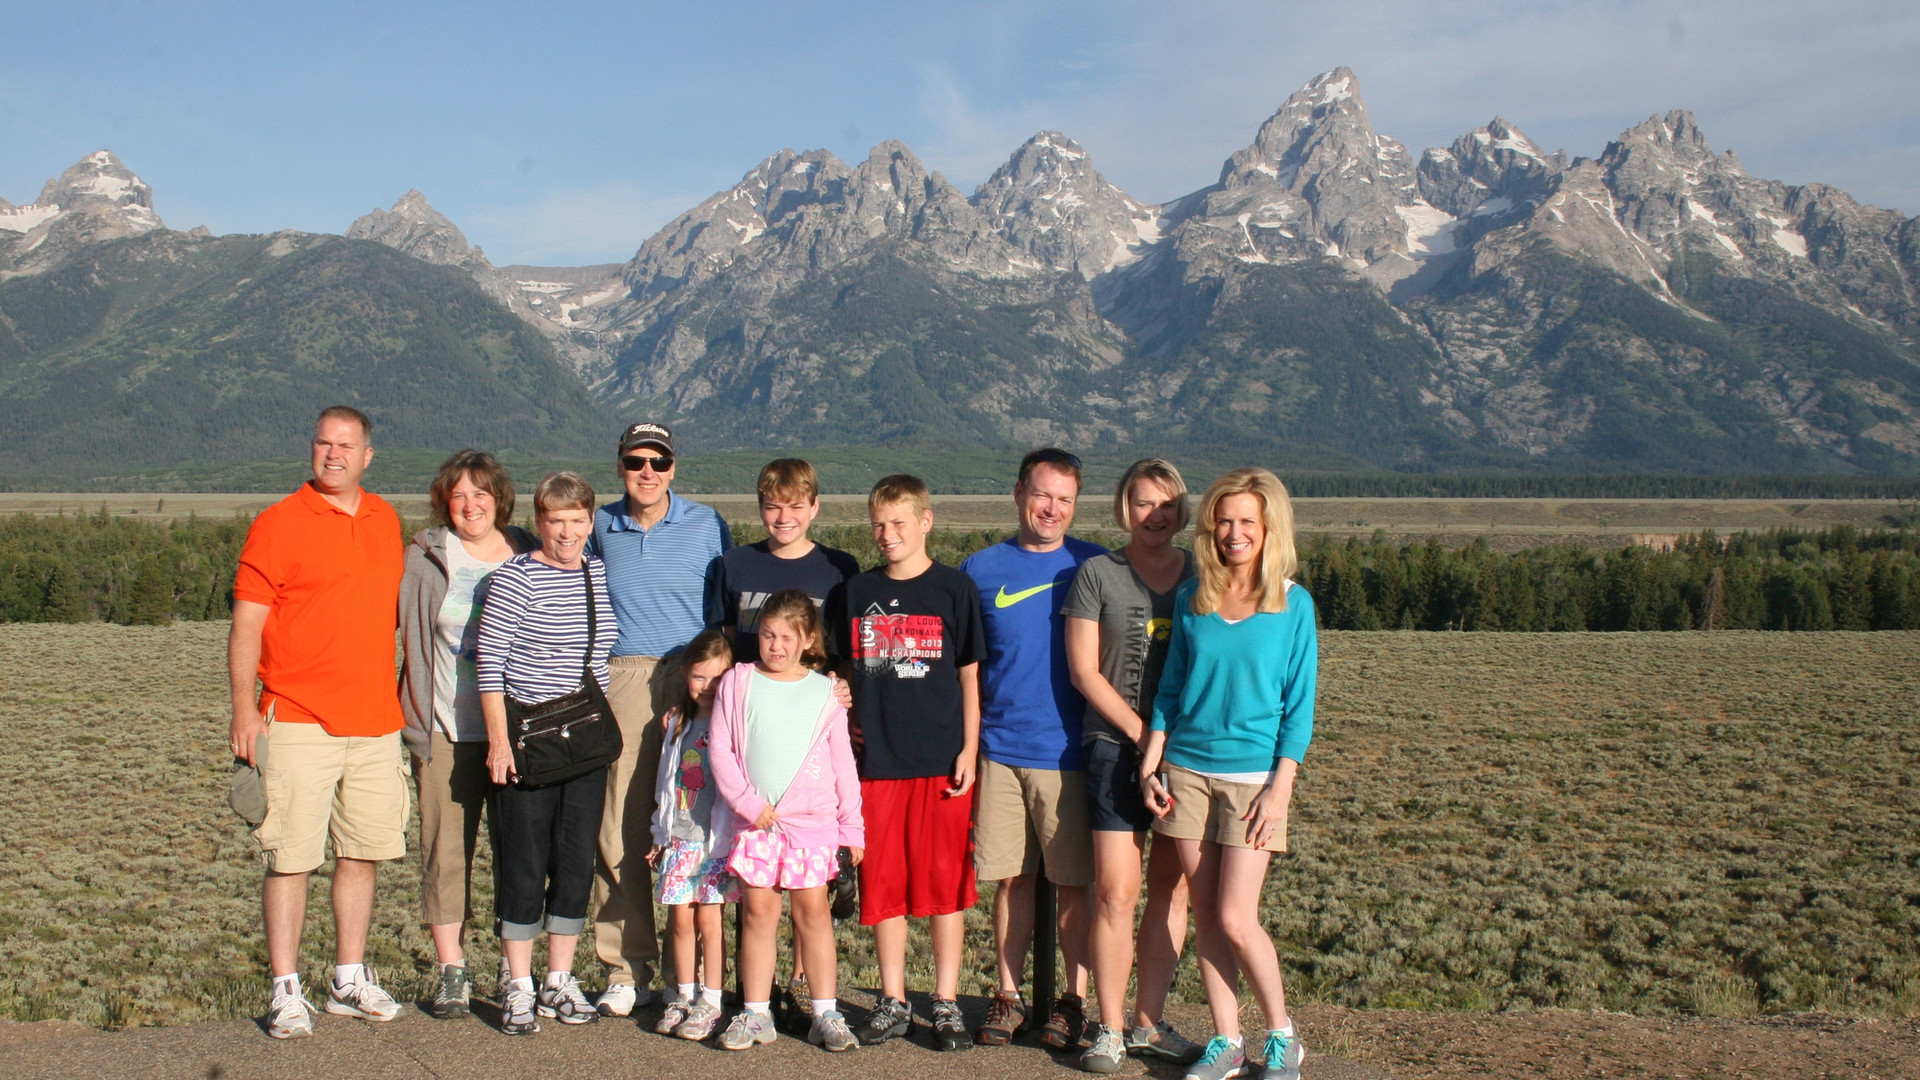 grand-teton-park-private-tour-tetons.jpg